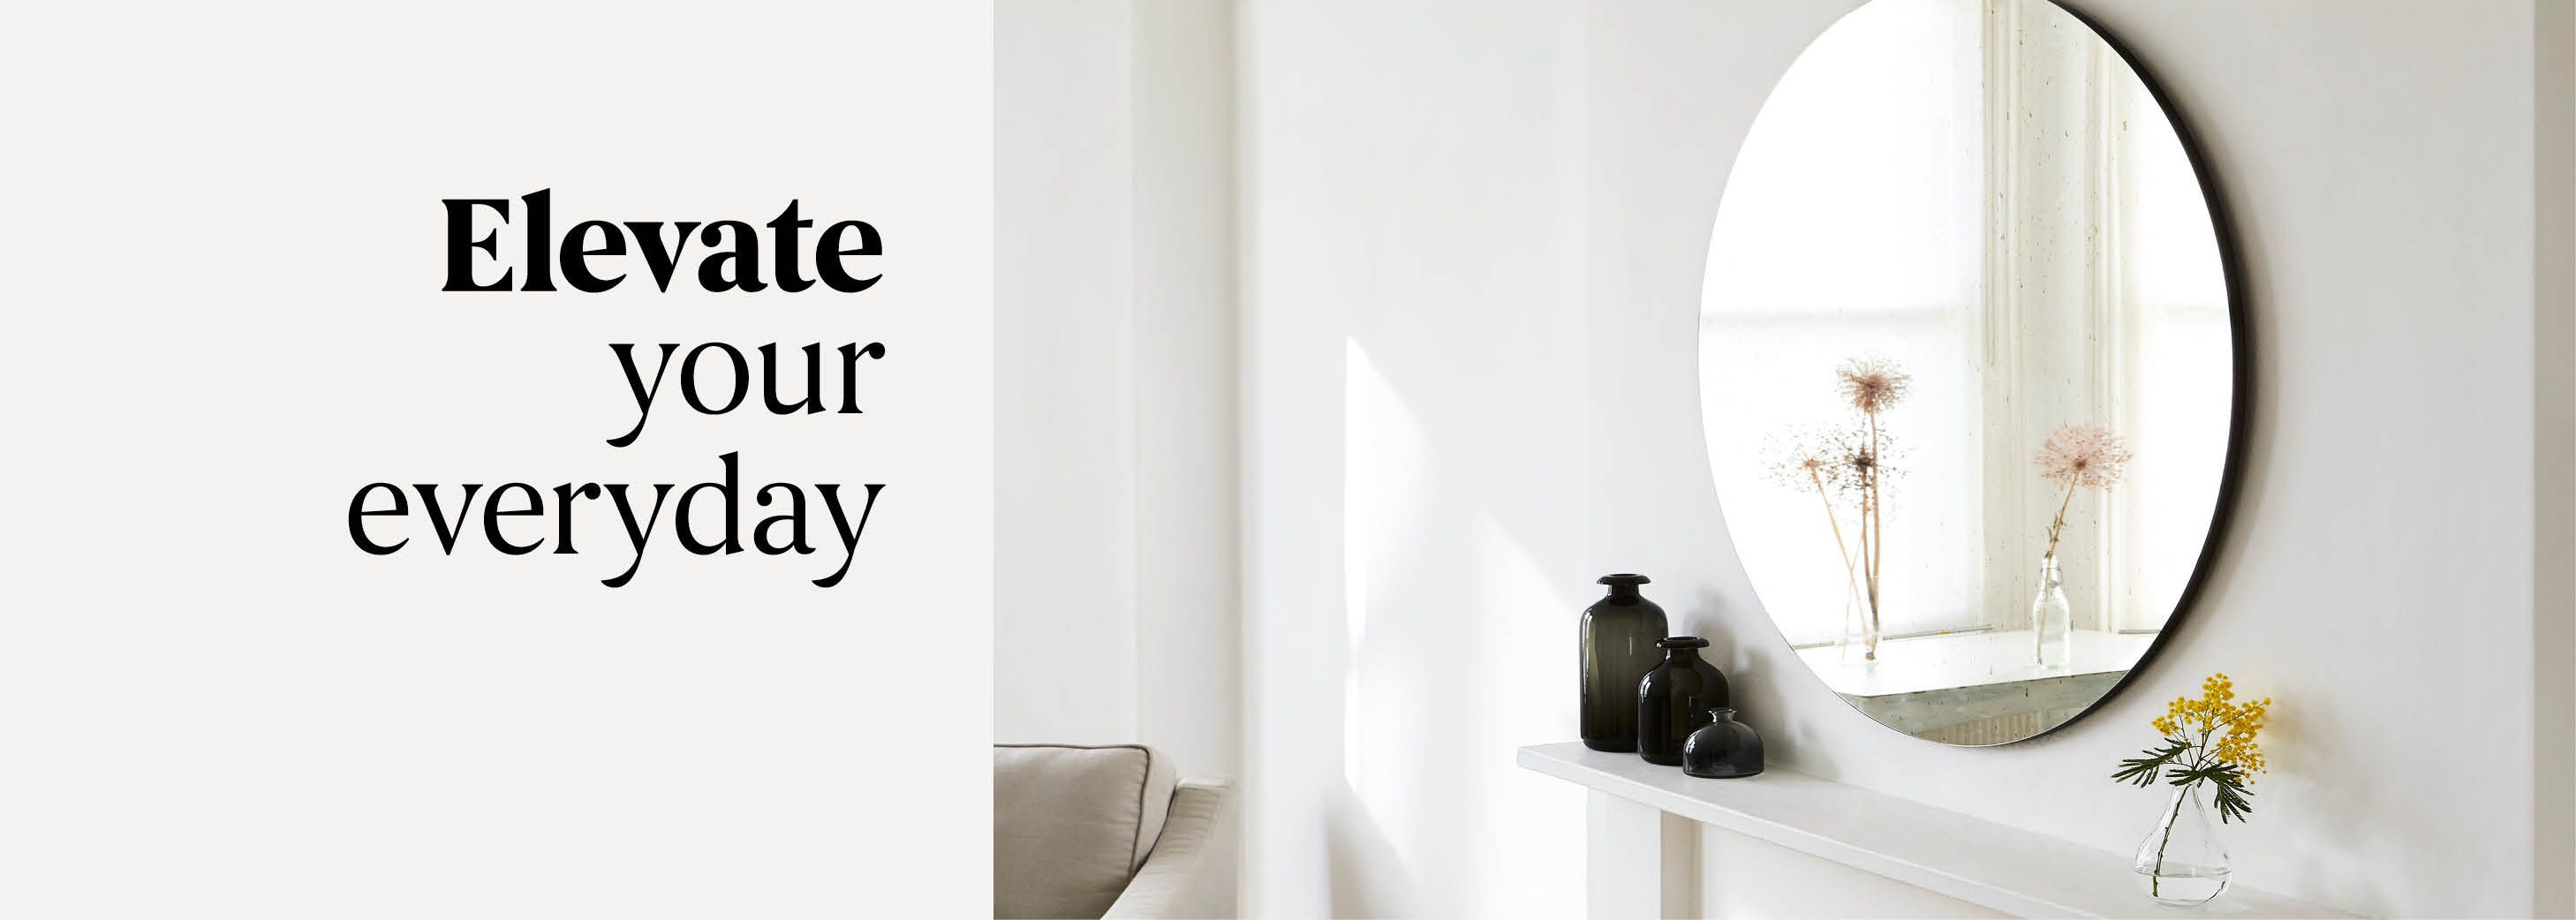 Elevate your everyday - Shop Mirrors